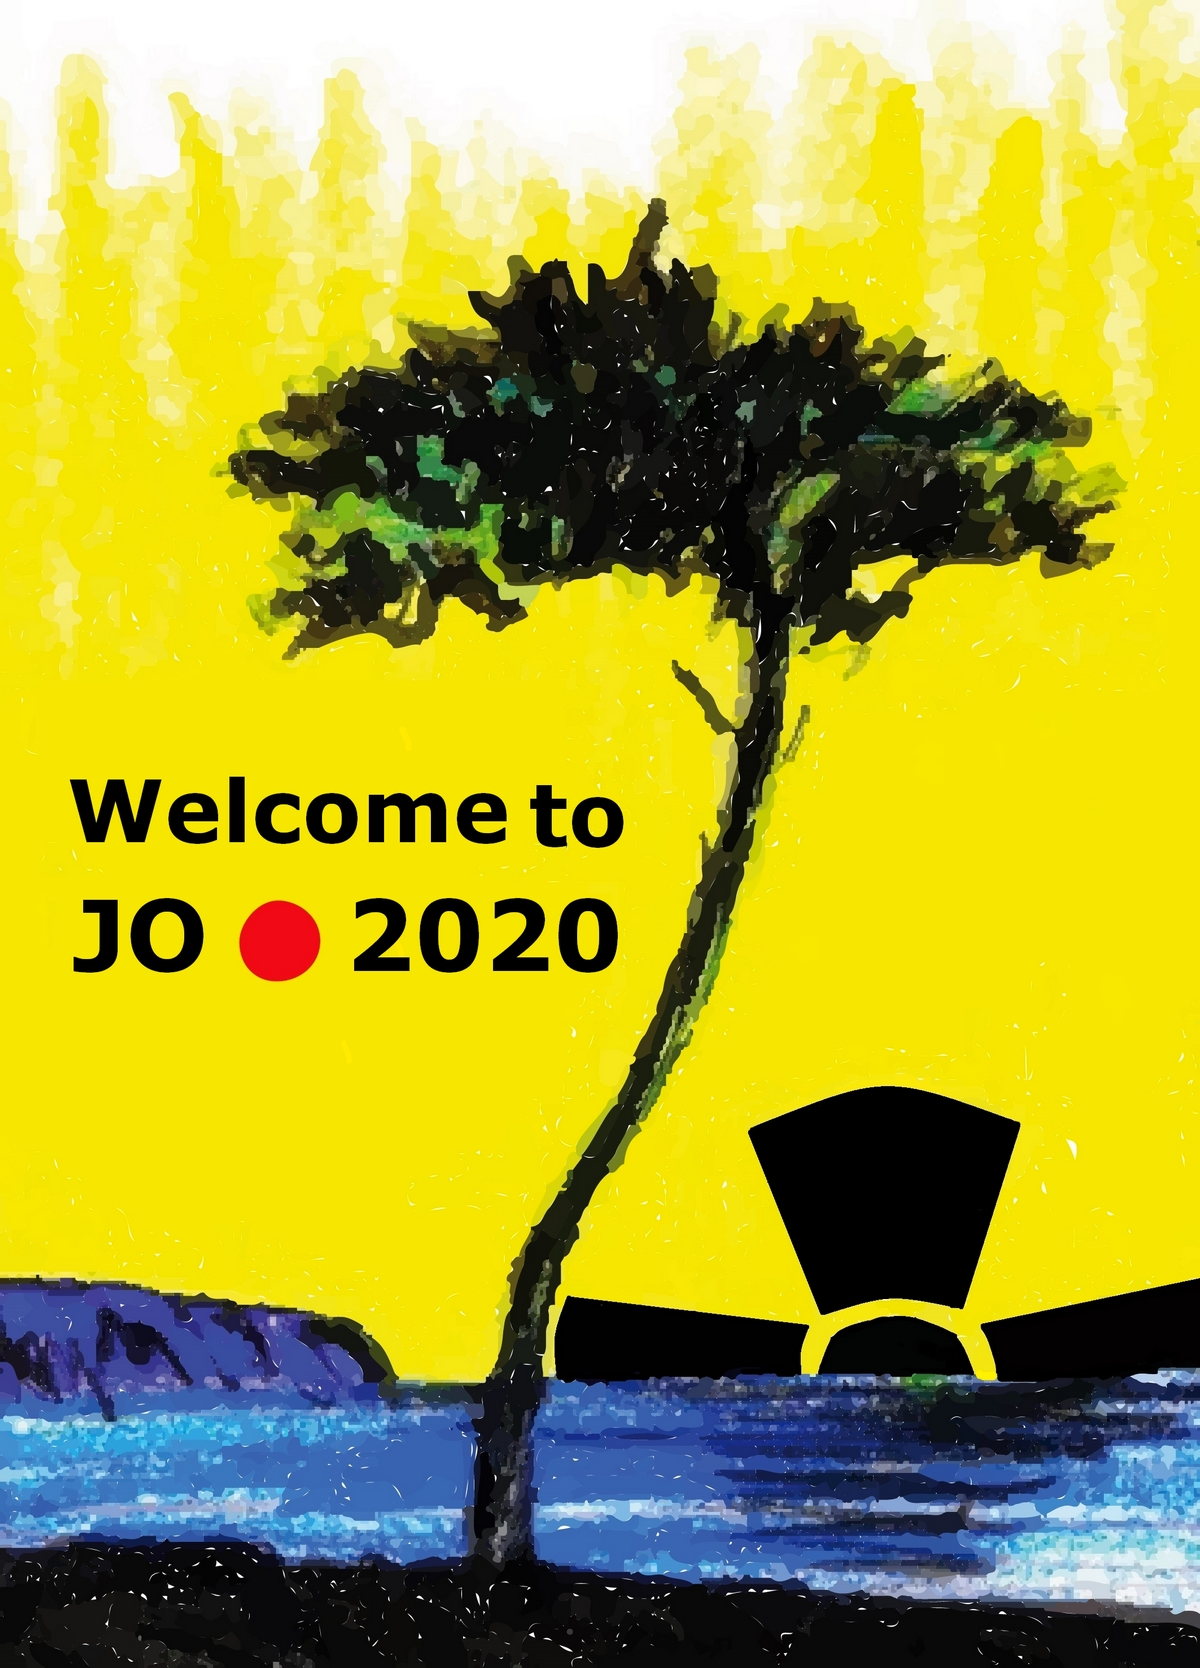 Welcome to JO 2020 !